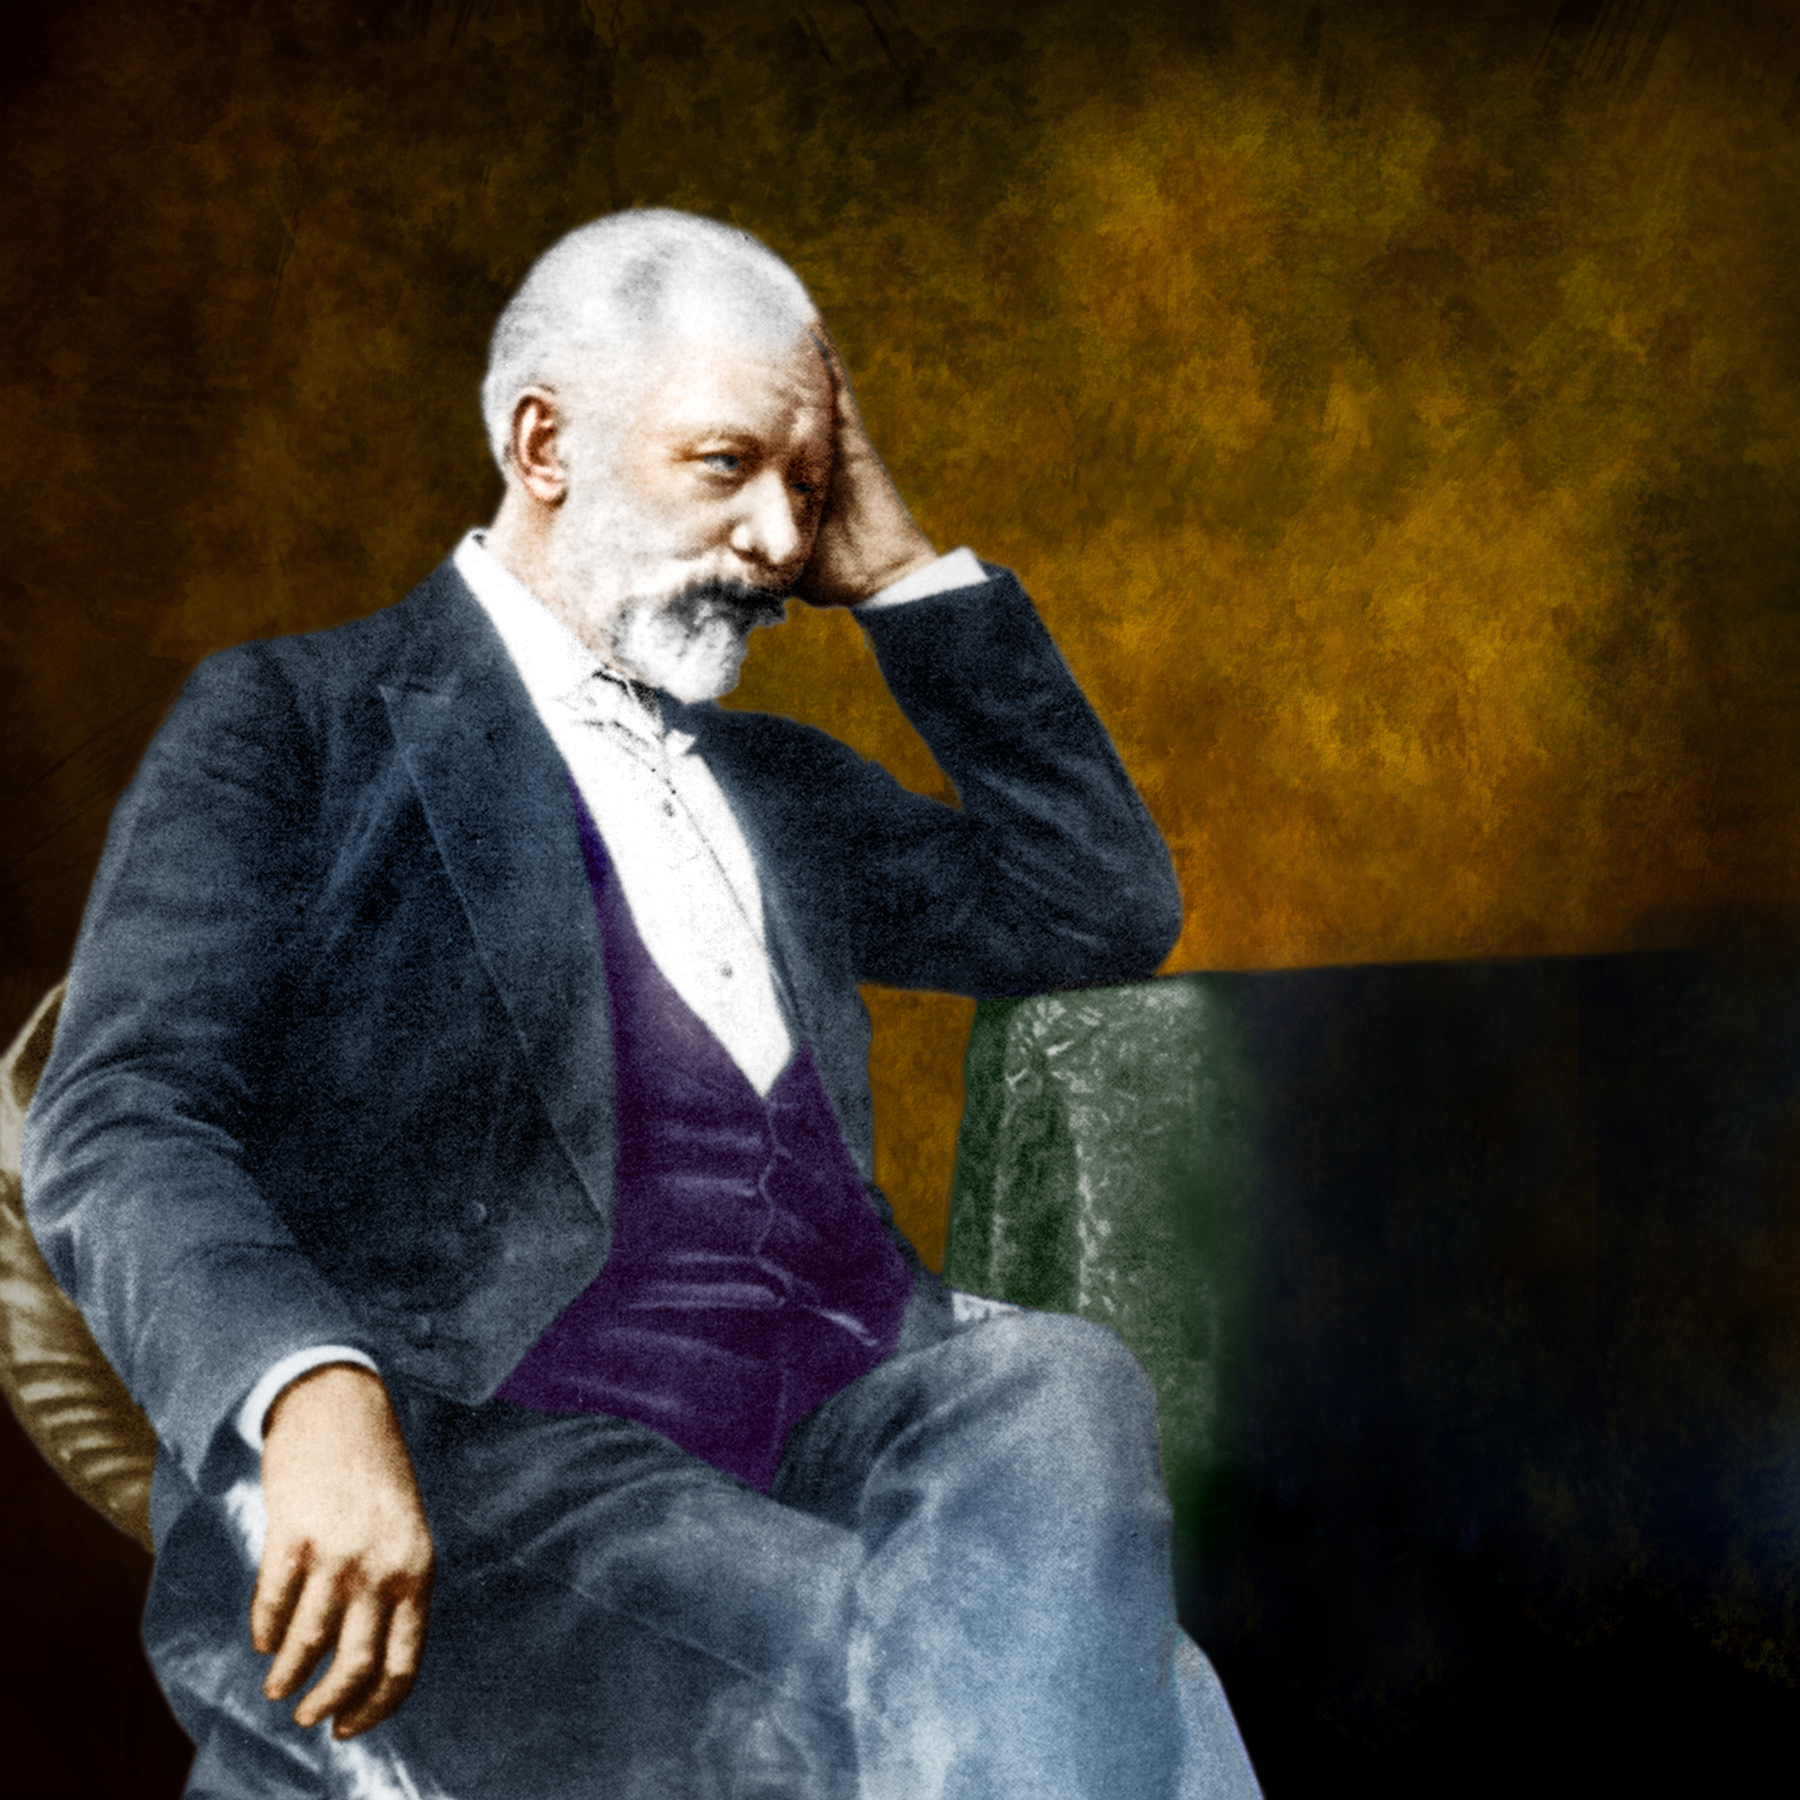 the early life and works of peter tchaikovsky As a pianist and the conductor of the russian musical society orchestra, he also introduces many of tchaikovsky's works, including the first four symphonies, the romeo and juliet fantasy-overture (1869) and other early program music.